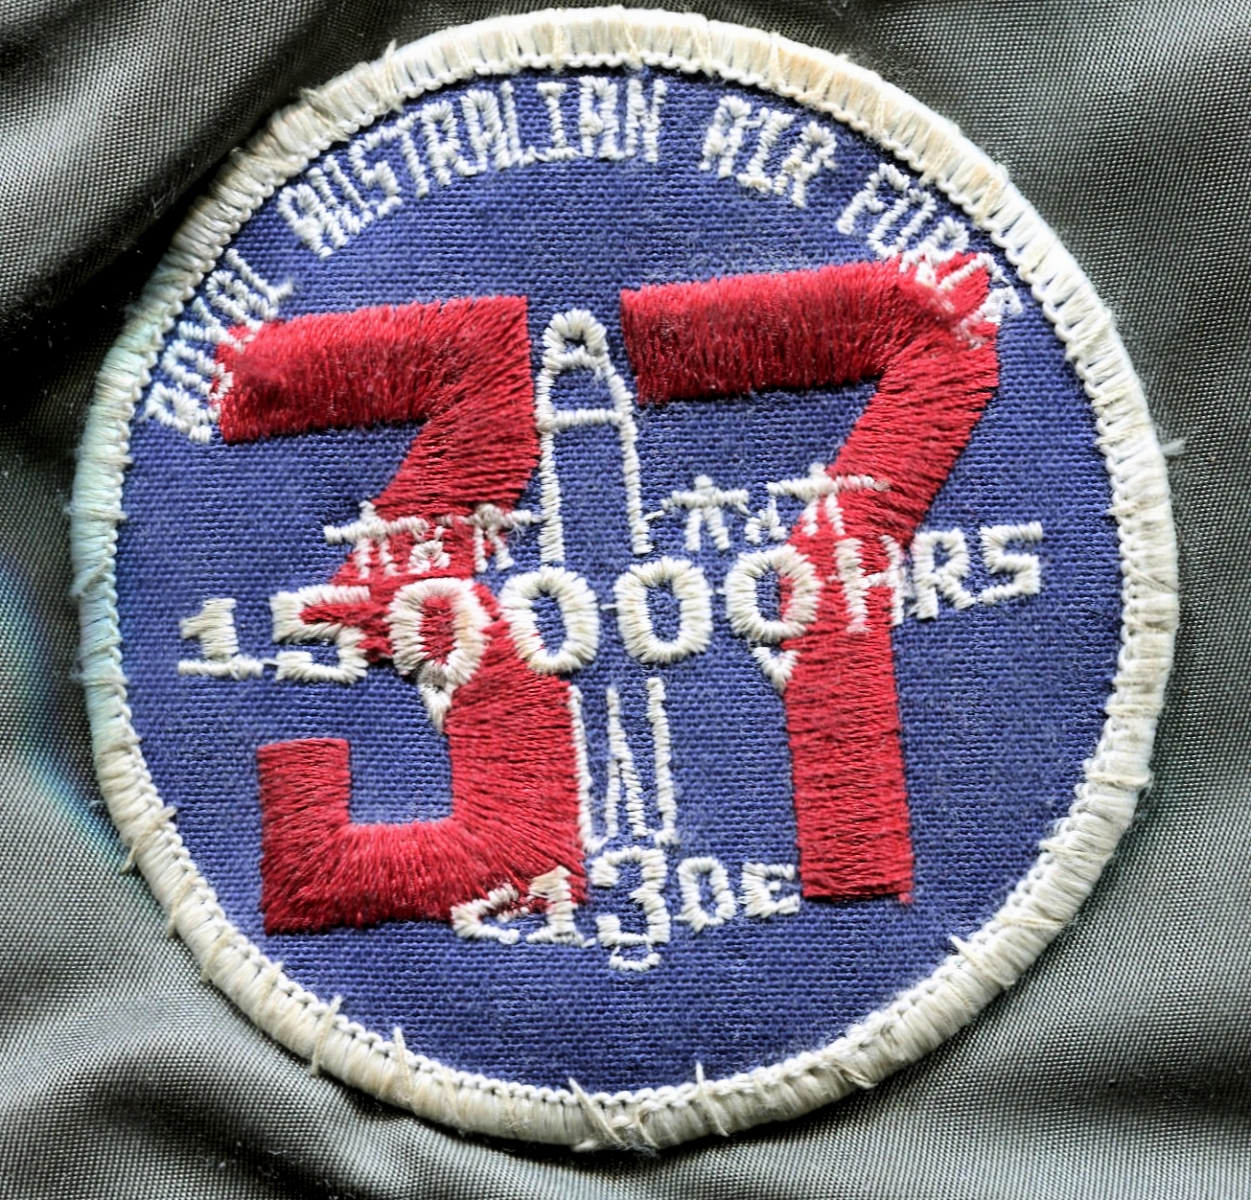 RAAF, Number 37 Squadron (C-130E) 150,000 Accident Free Hours Patch ...